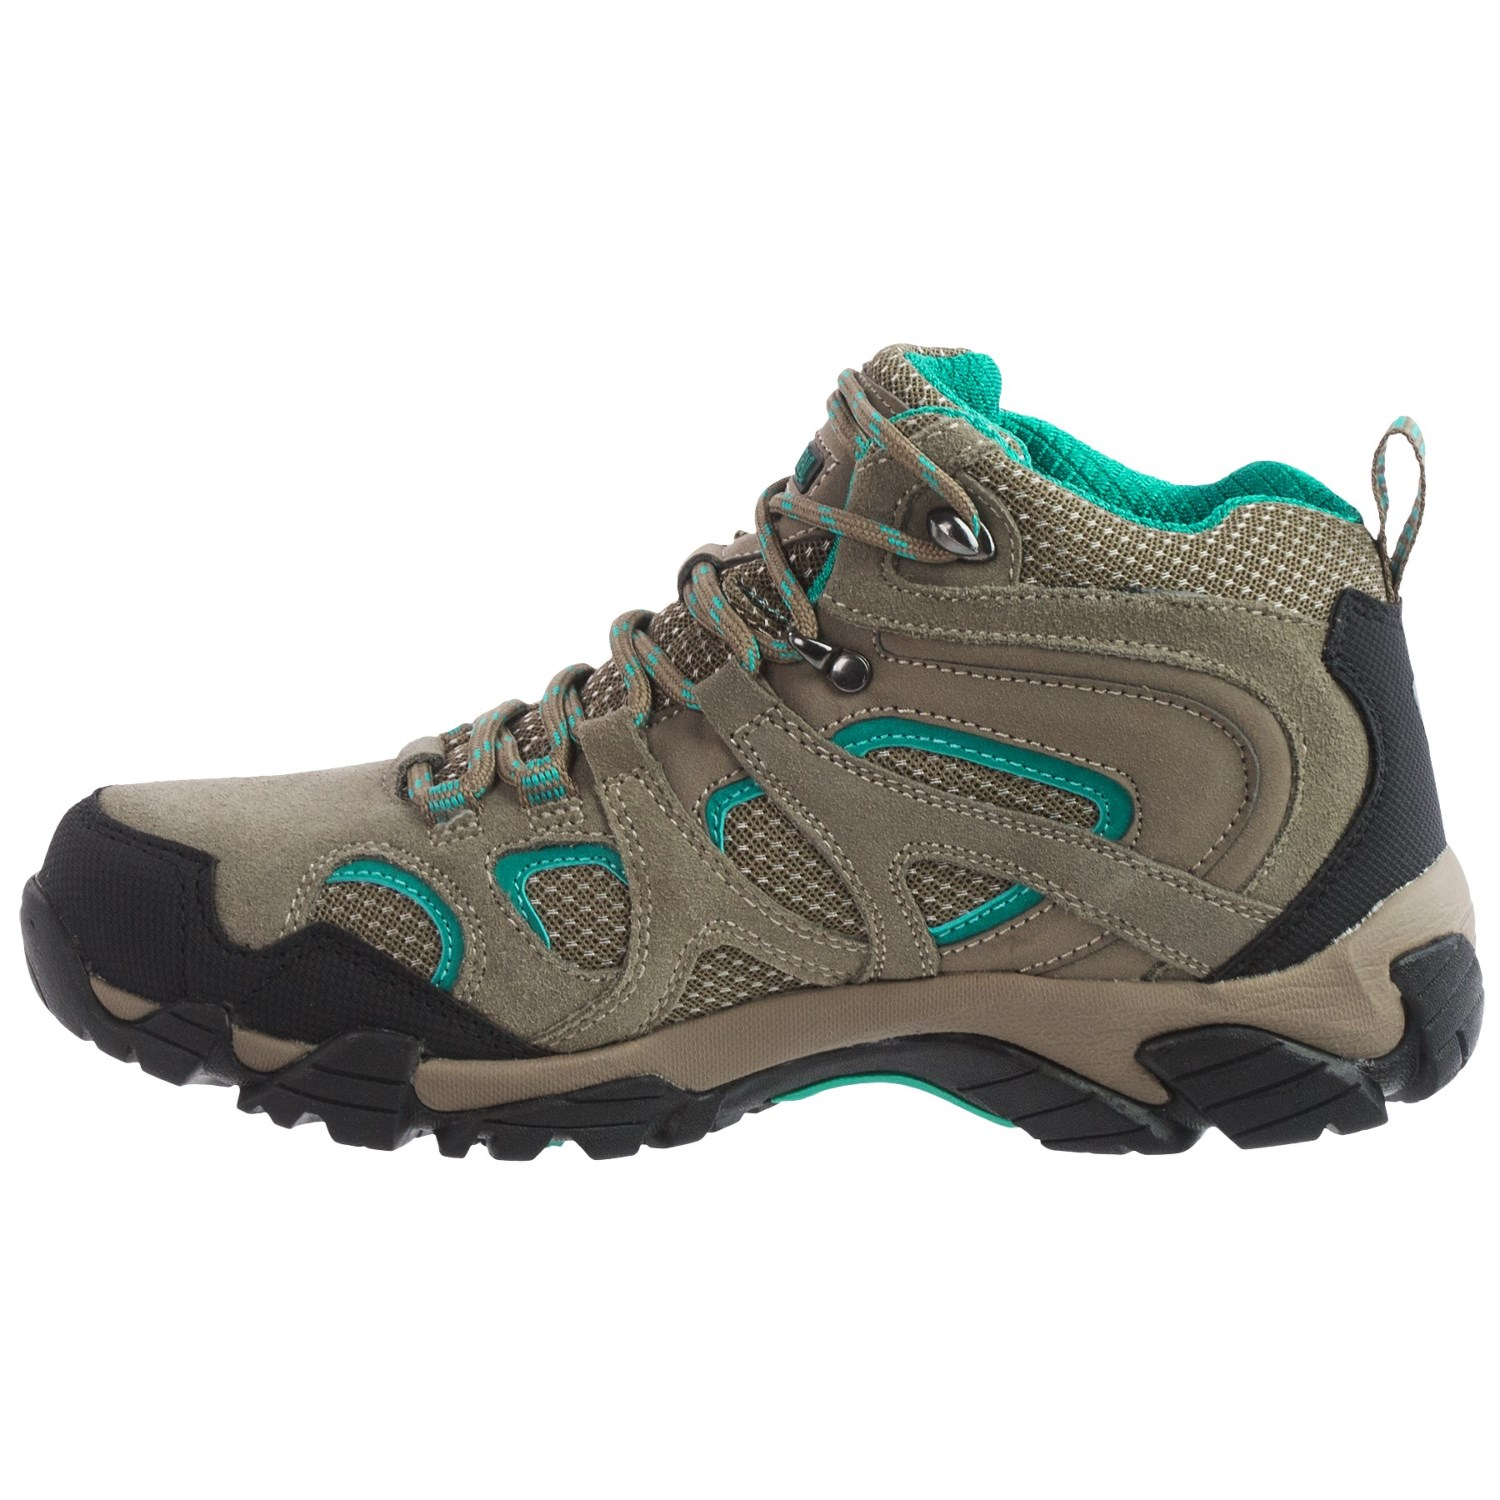 pacific trail diller hiking boots for women   save 46